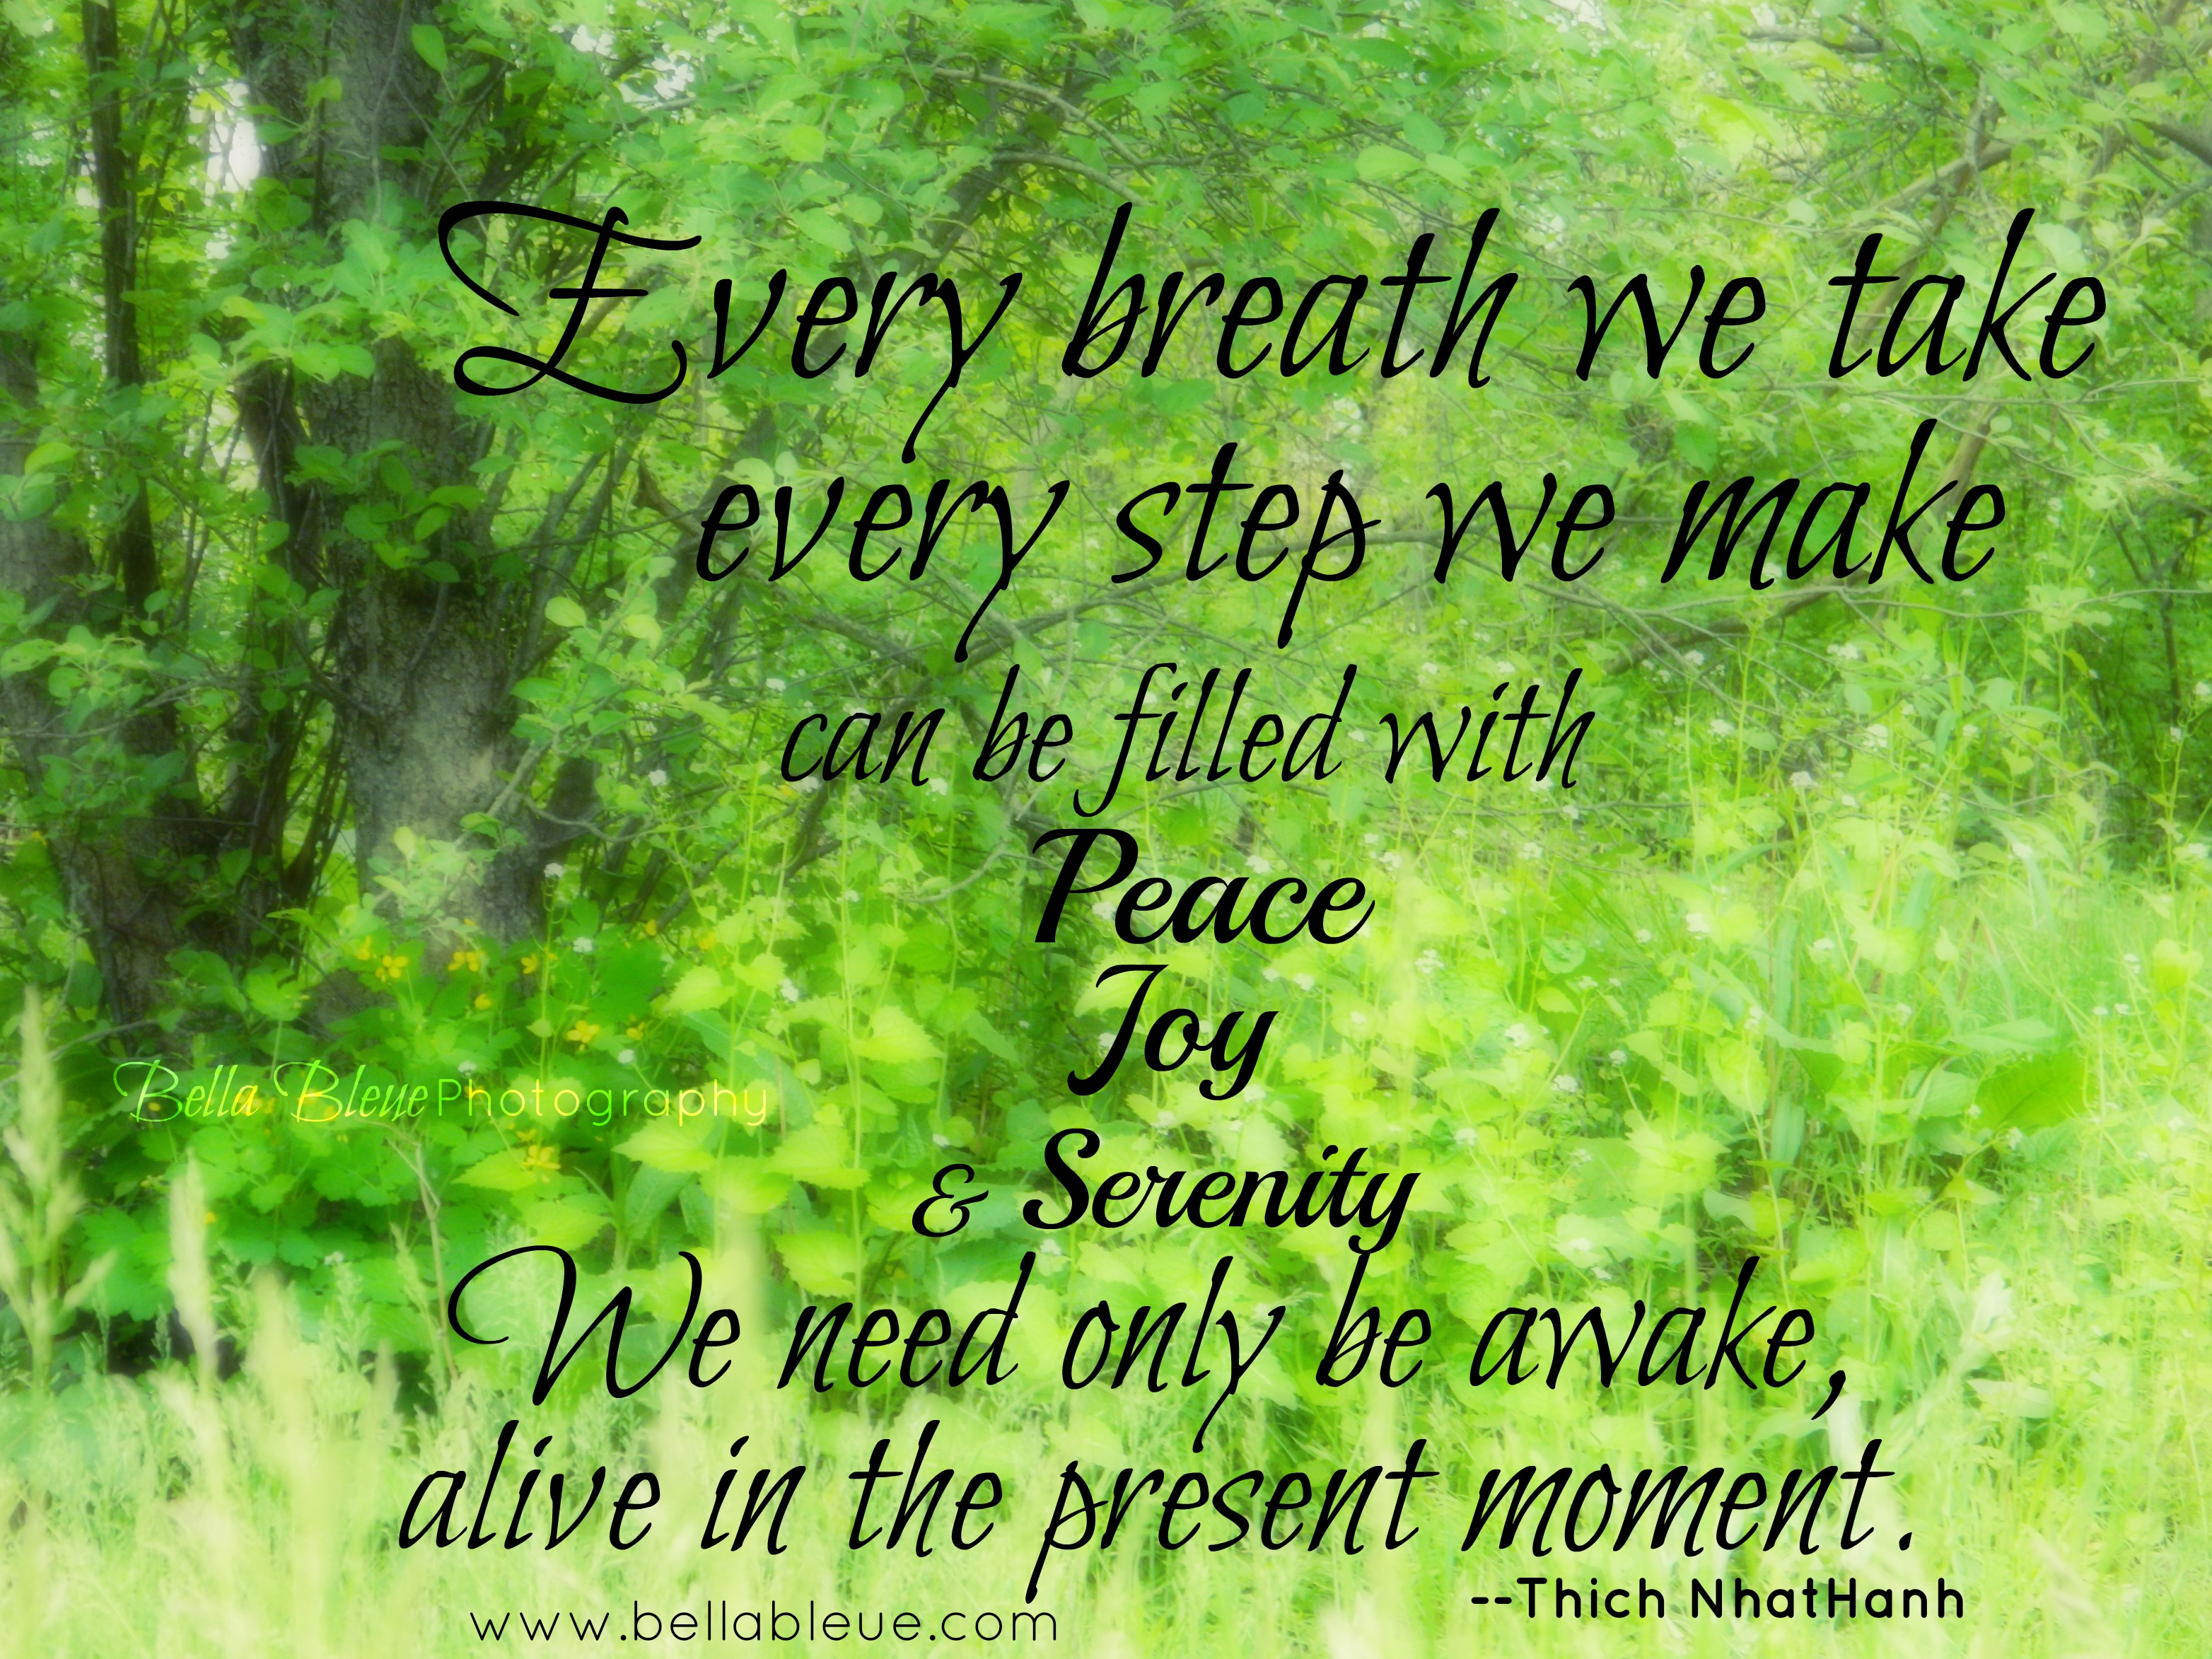 every-breath-we-take-every-step-we-make-can-be-filled-with-peace-joy-and-serenity-we-need-only-be-awake-alive-in-the-present-moment-thich-nhat-hanh-spring-quote.jpg